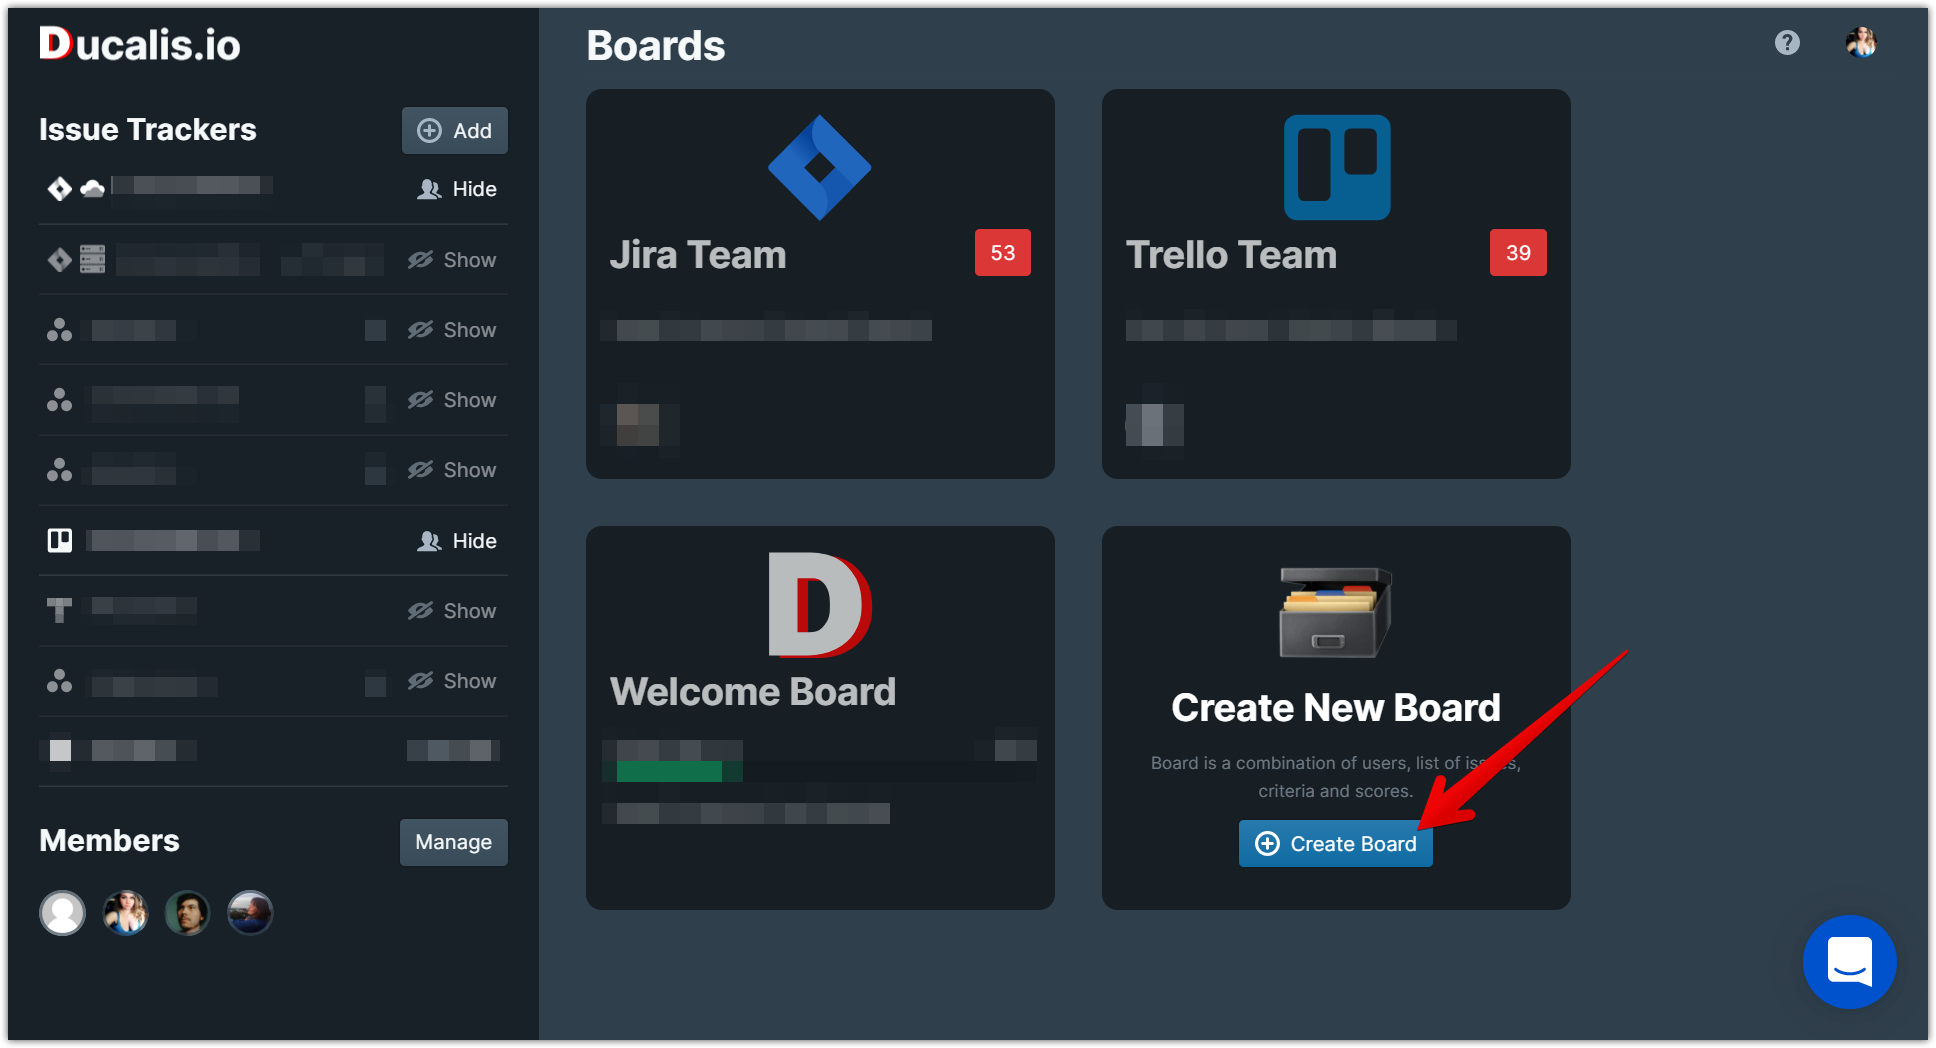 ducalis.io dashboard create new board